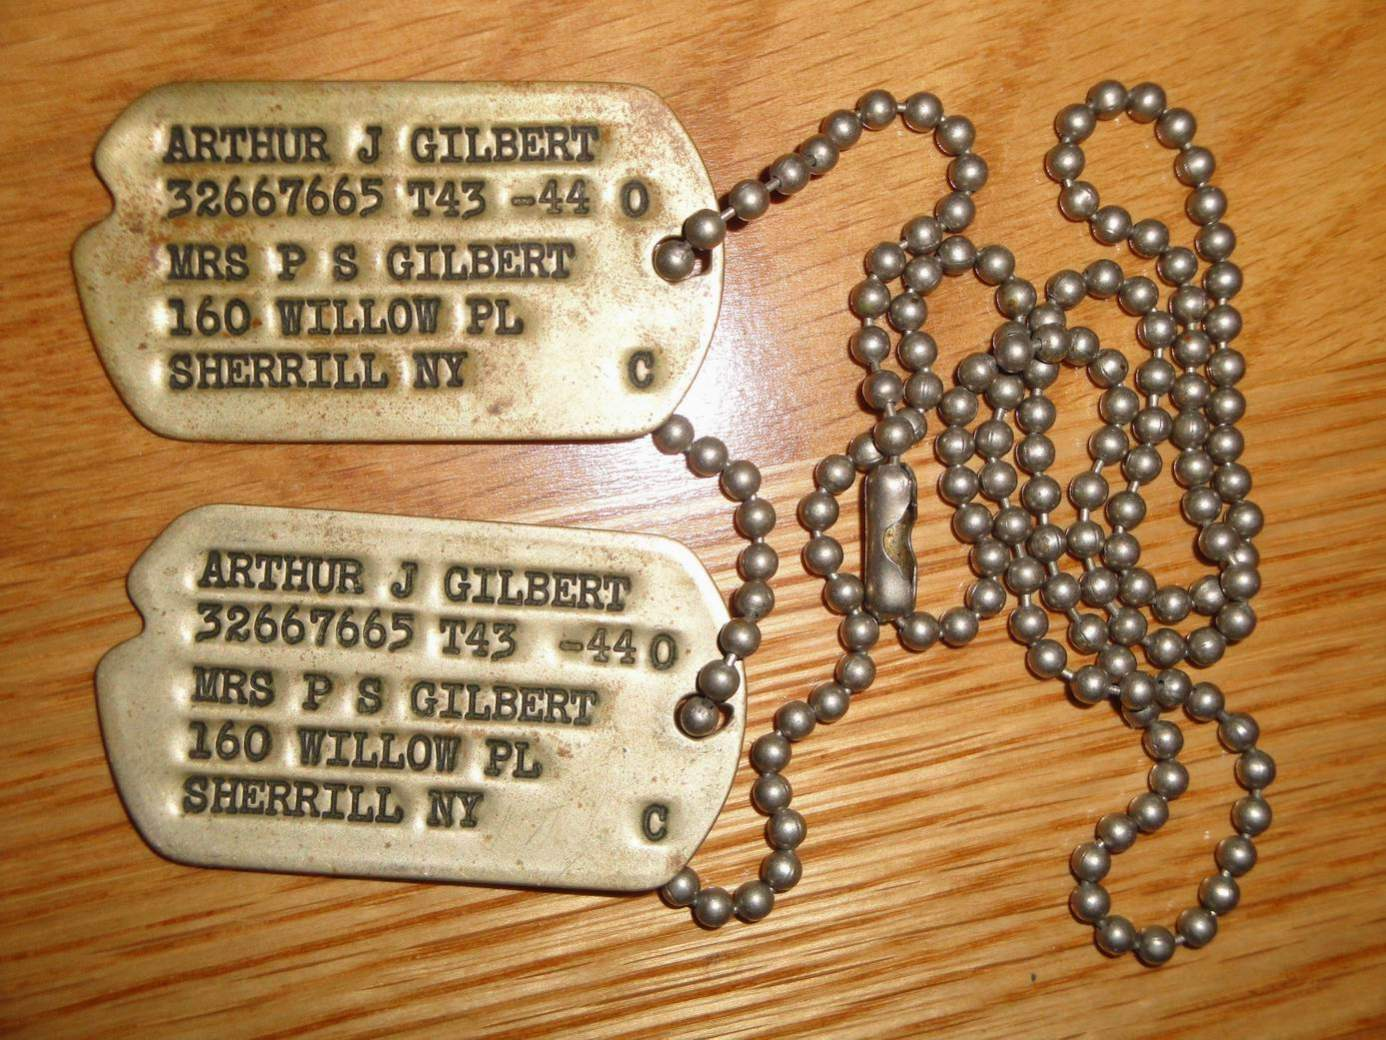 When Do You Get Dog Tags In The Army